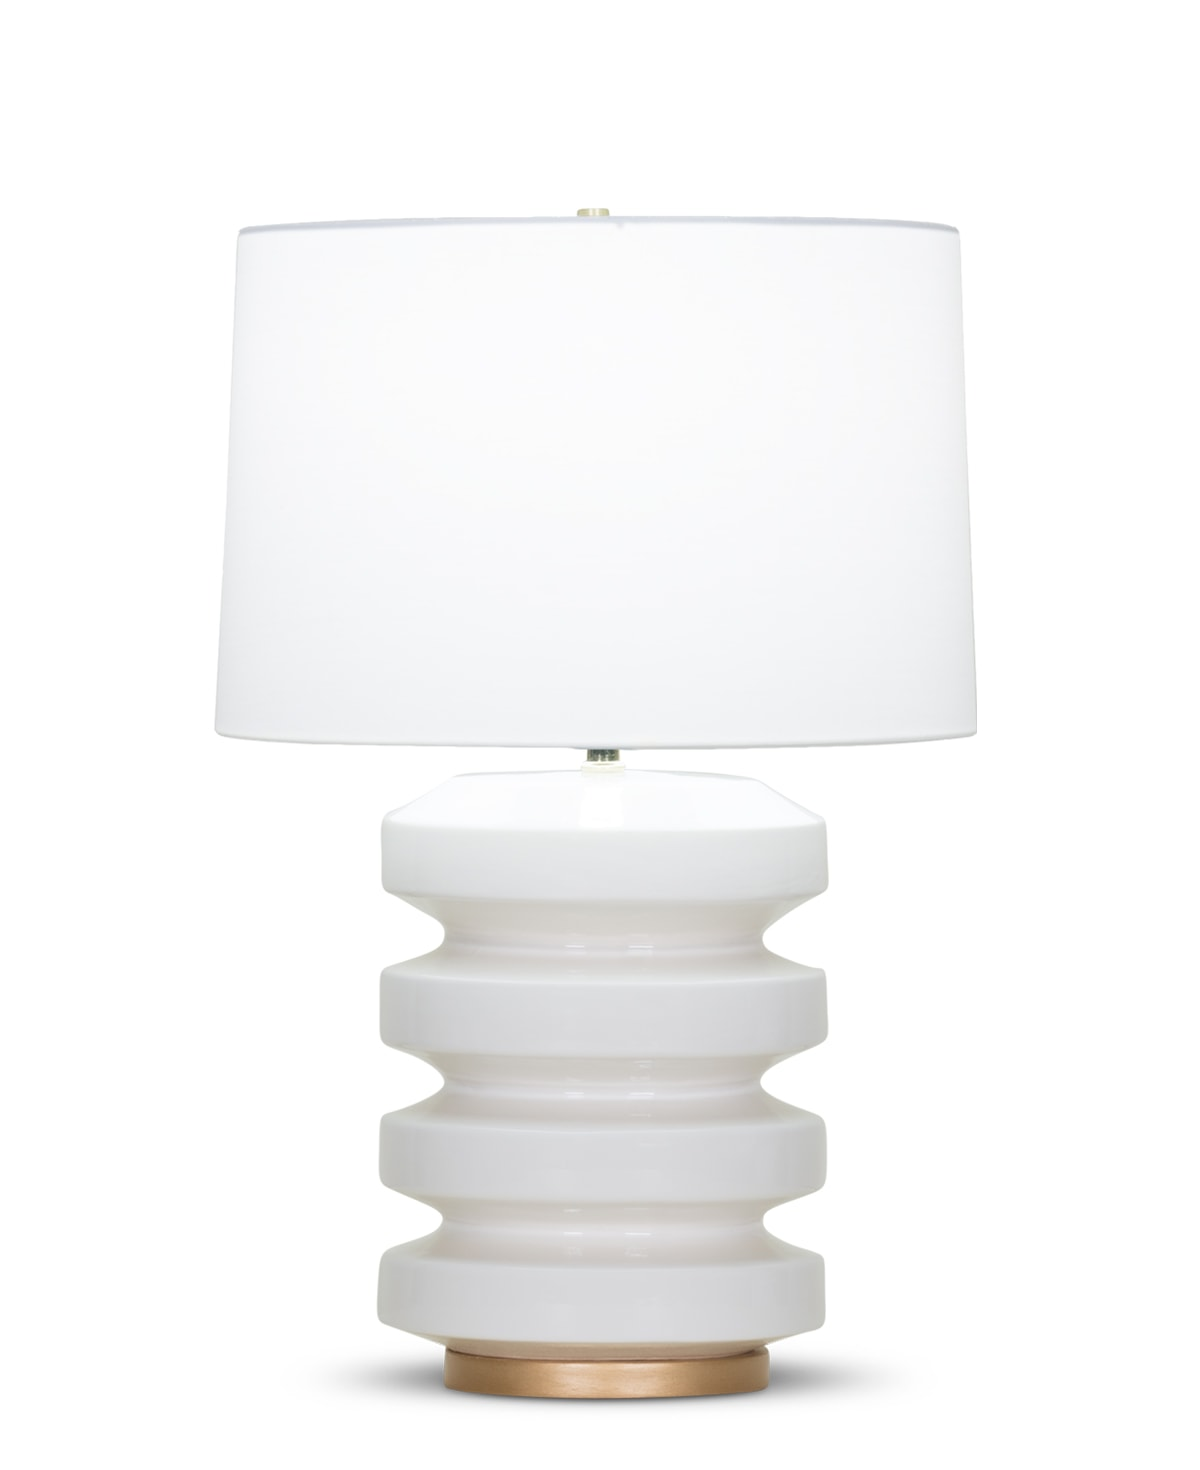 FlowDecor Rollins Table Lamp in ceramic with off-white finish and resin base with gold finish and off-white cotton tapered drum shade (# 4081)